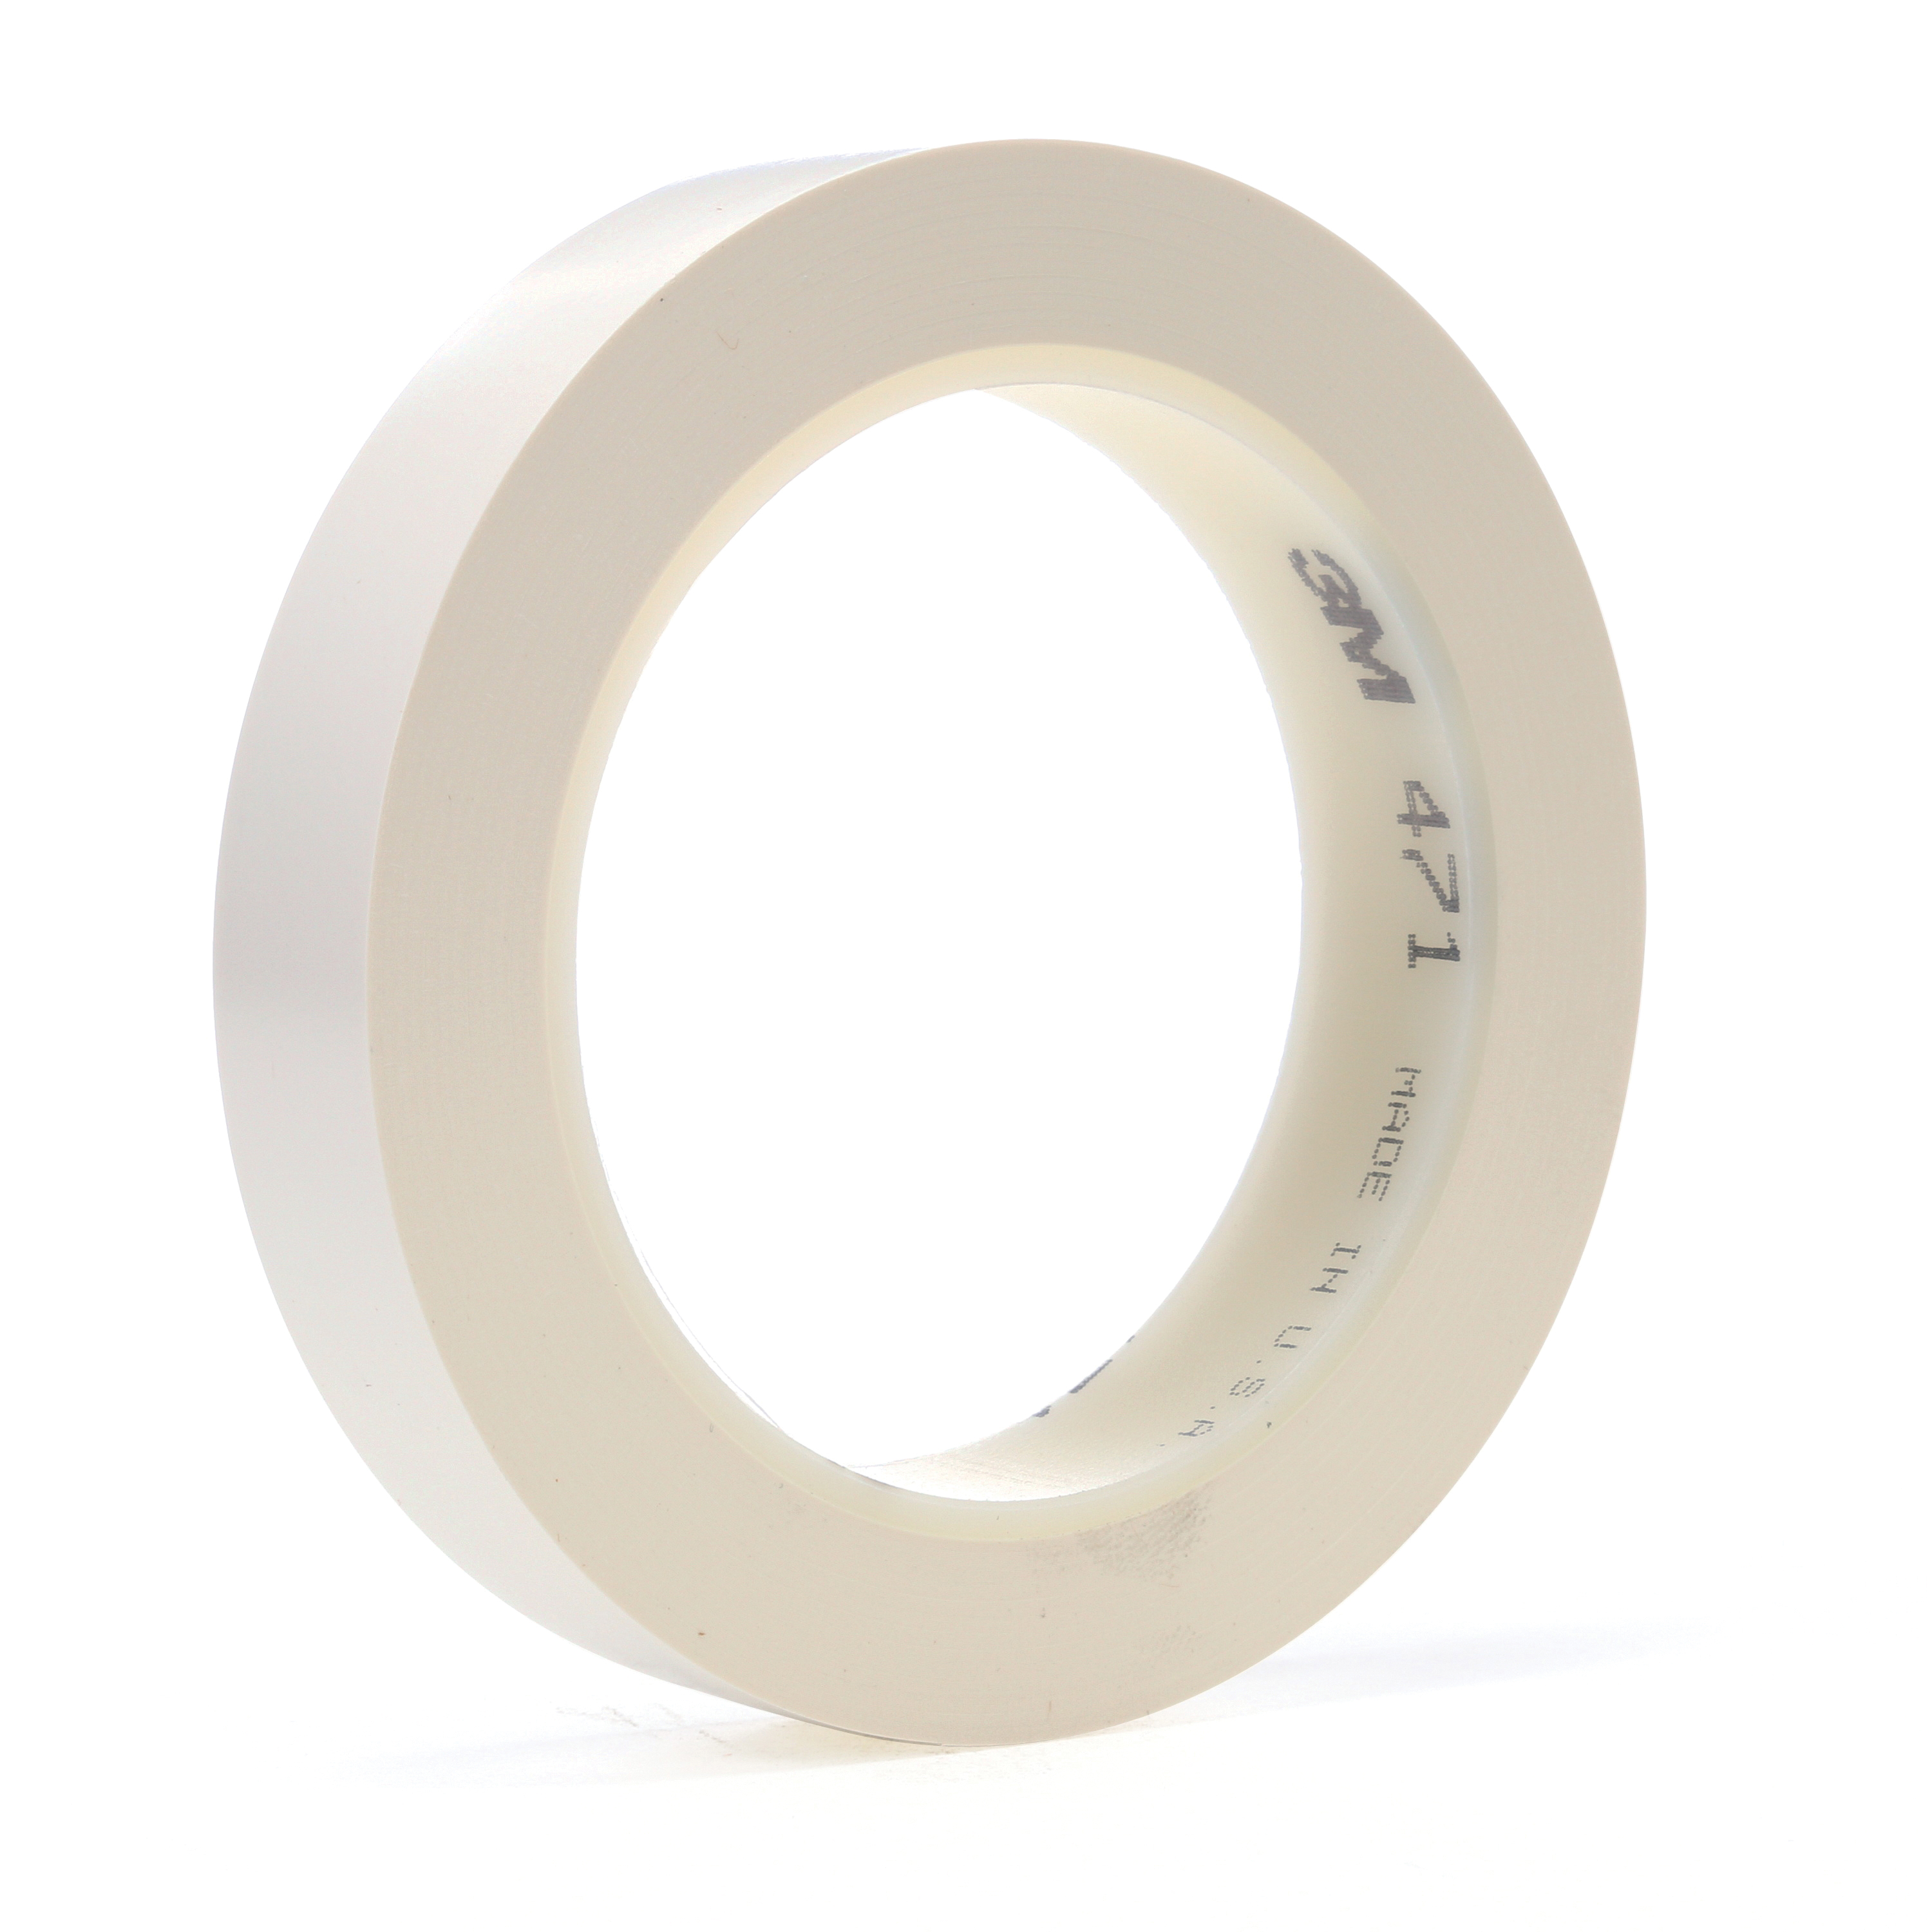 3M™ 021200-03994 High Performance Vinyl Tape, 36 yd L x 3/8 in W, 5.2 mil THK, Rubber Adhesive, Vinyl Backing, White